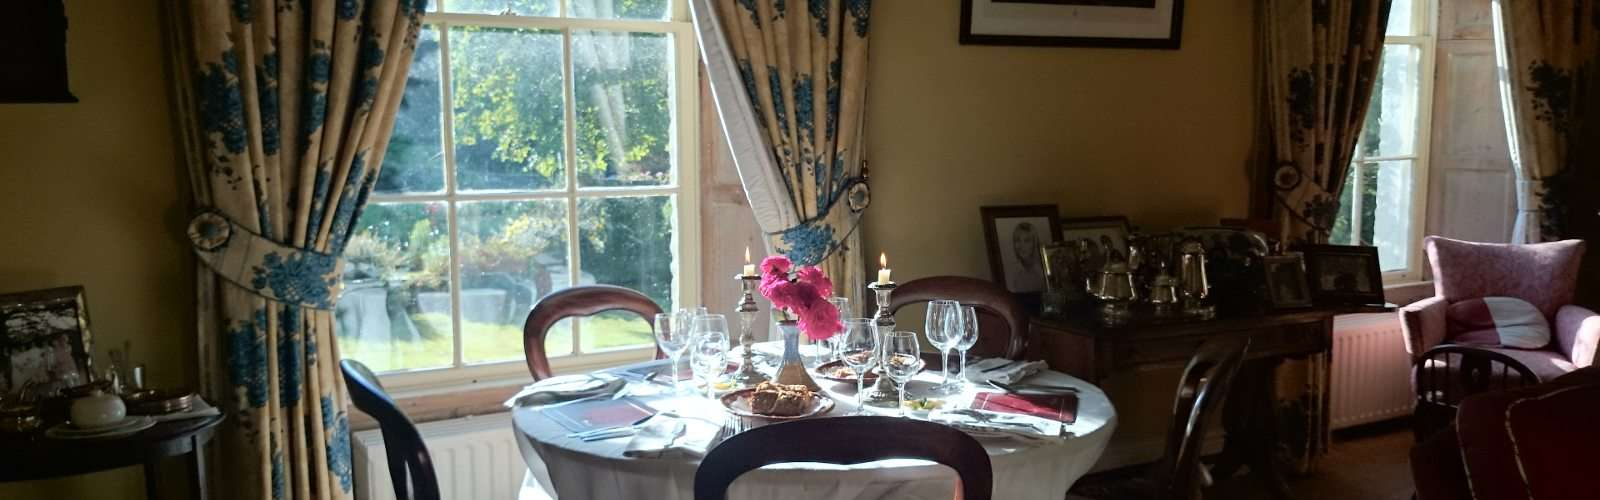 Kilmokea Country Manor, New Ross, Wexford